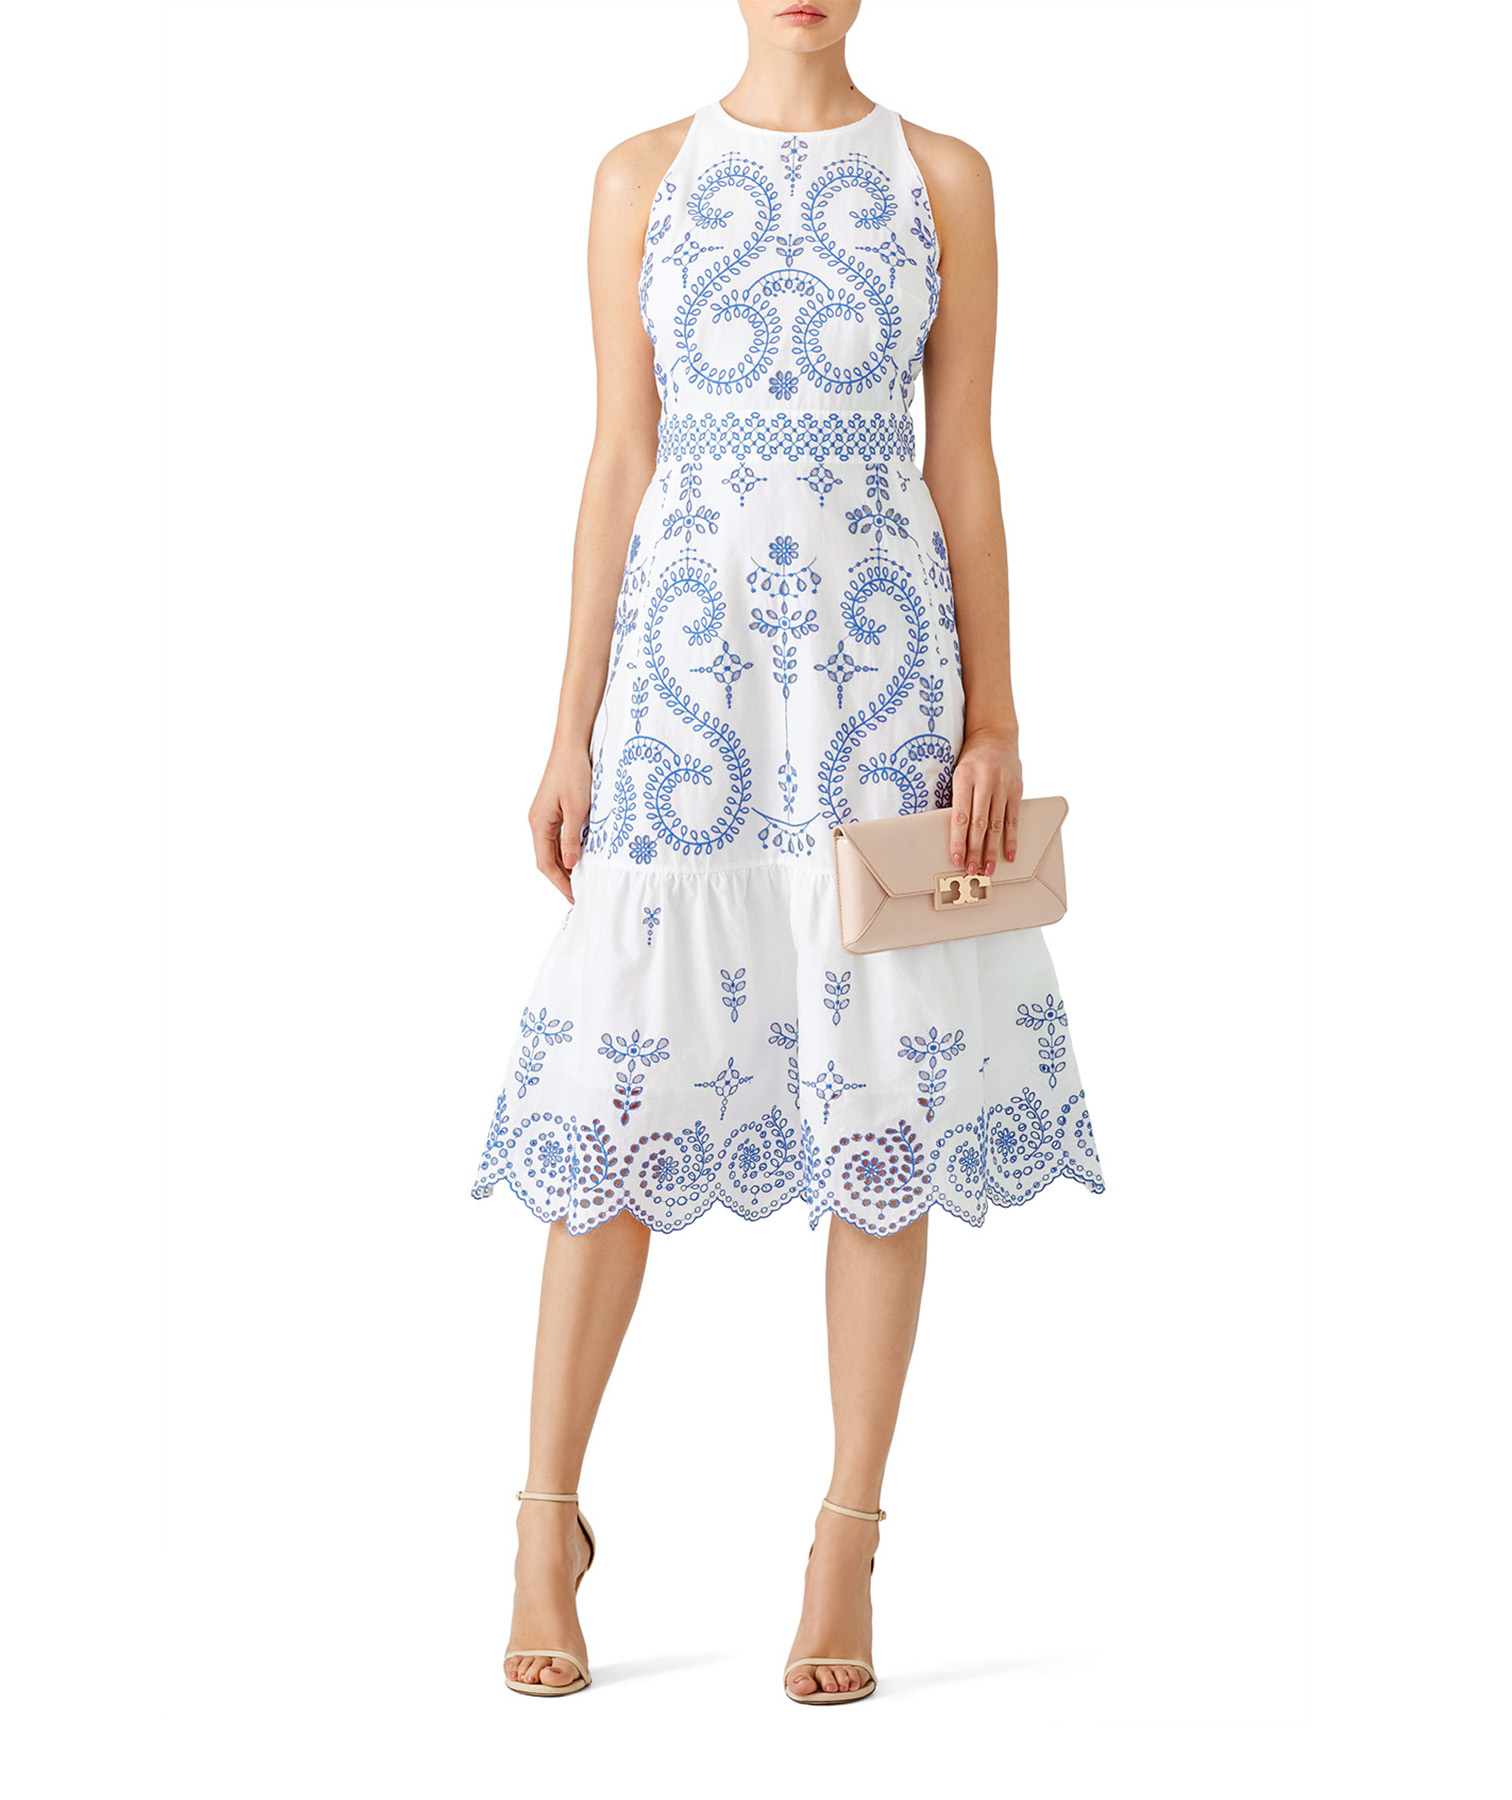 Tory Burch Floral Mariana Dress on model